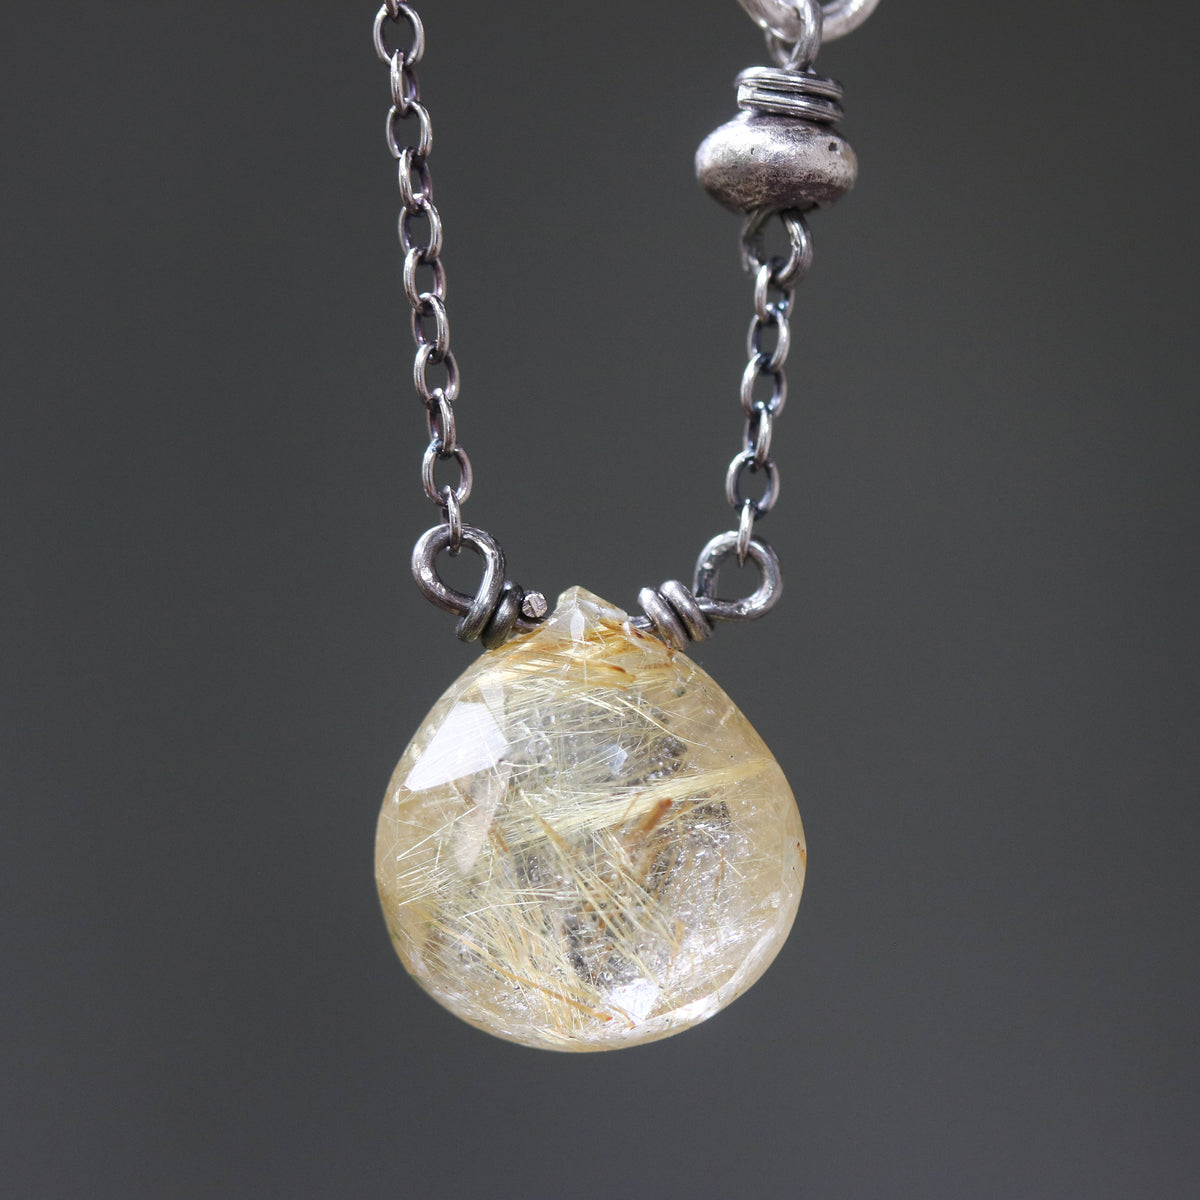 Teardrop faceted golden Rutilated quartz pendant necklace with silver ring secondary on oxidized sterling silver cable chain